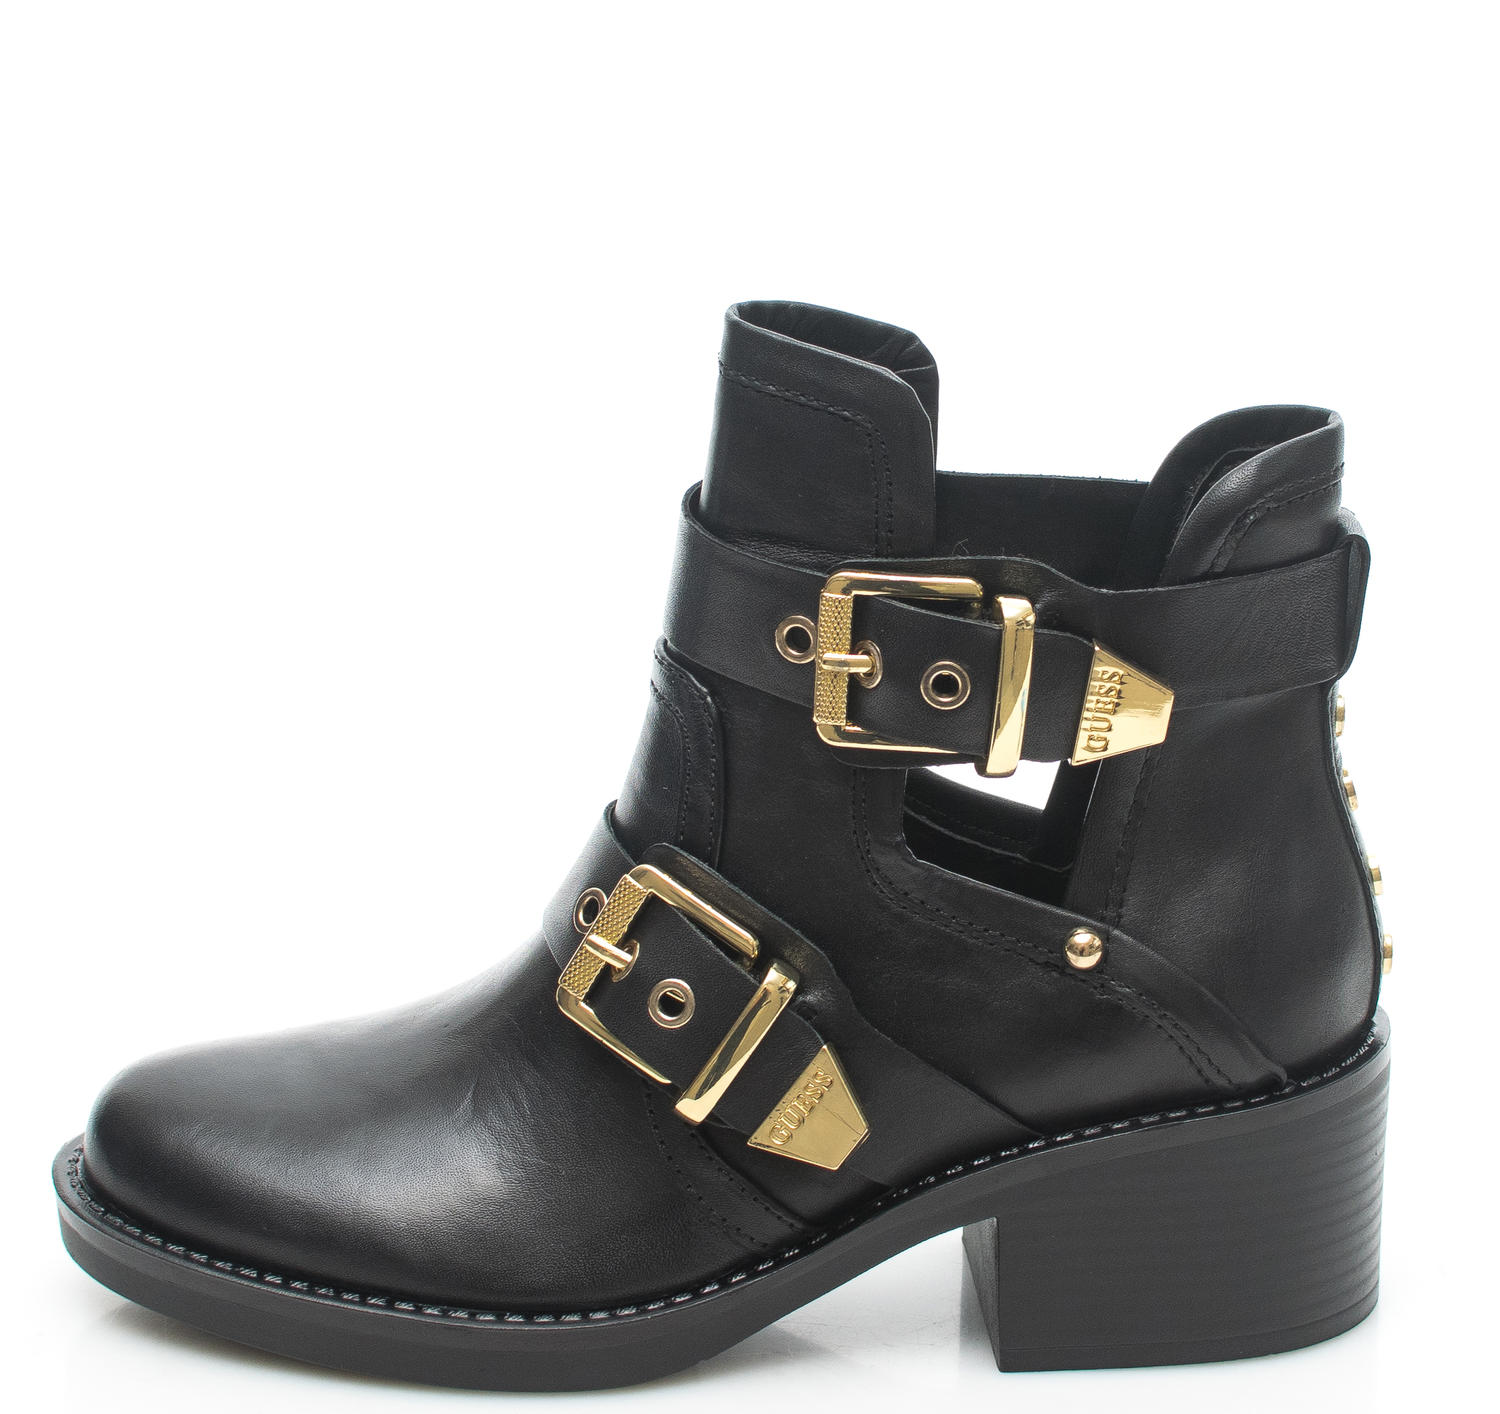 Women's shoes - boots FONZIE, in leather